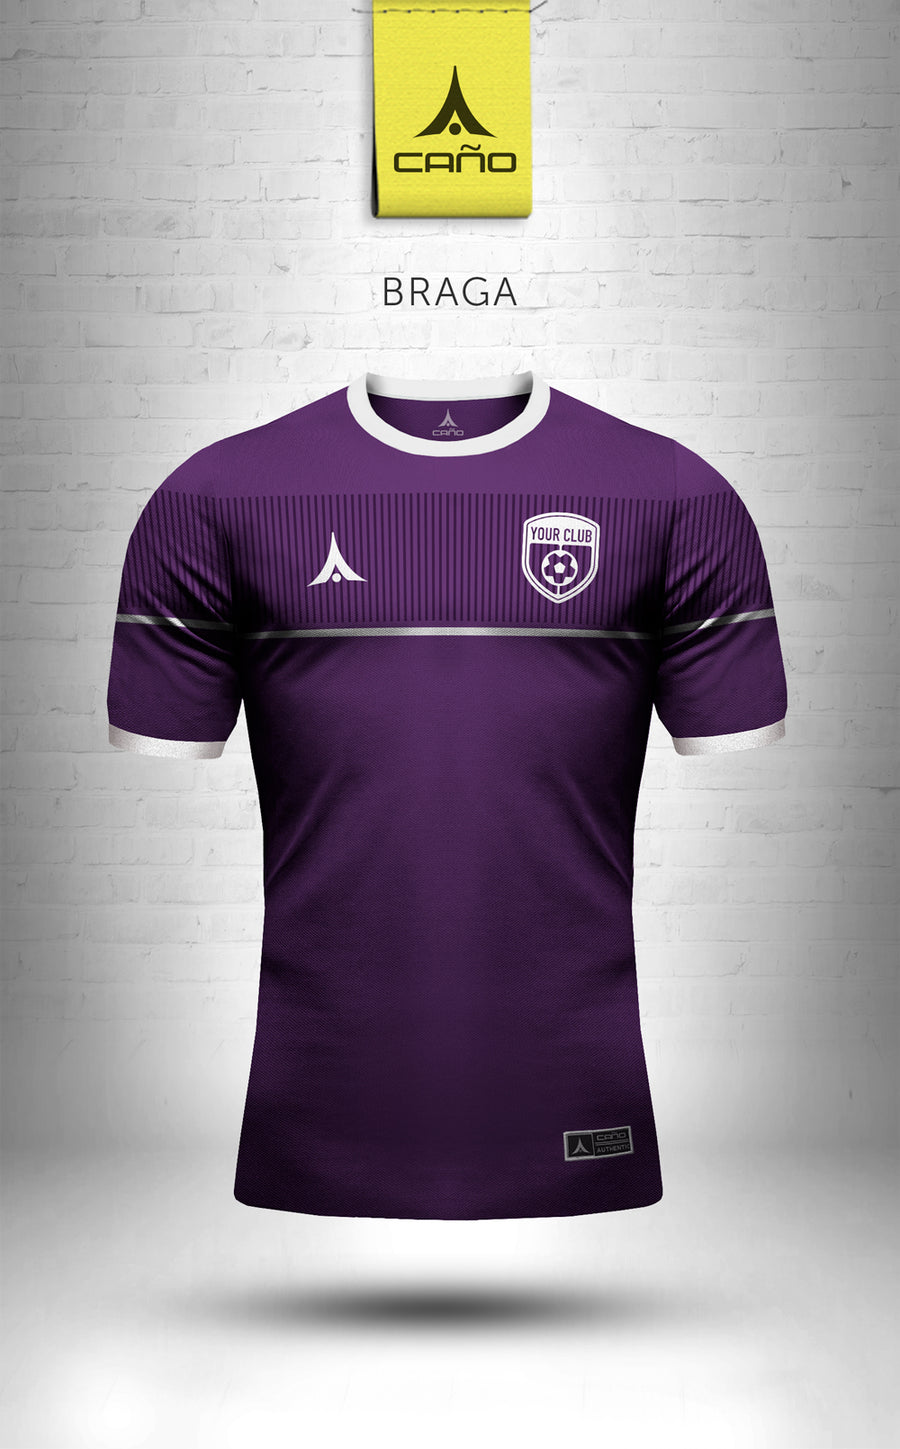 Braga in purple/white